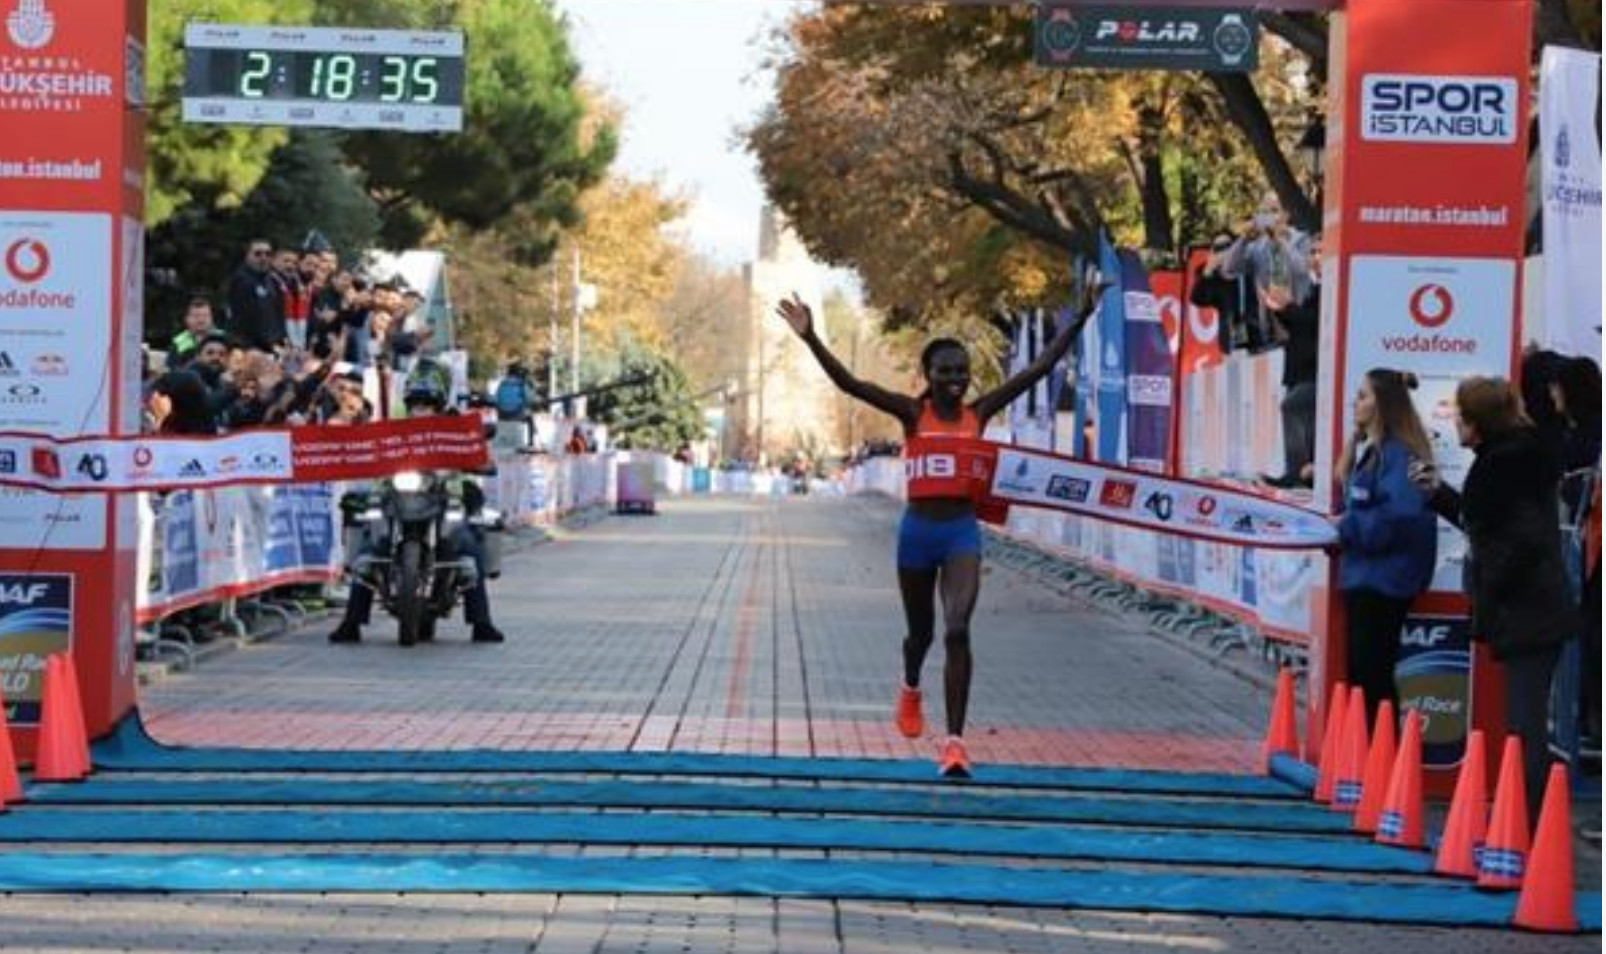 Ruth Chepngetich clocks 1:05:30 at Vodafone Istanbul Half Marathon